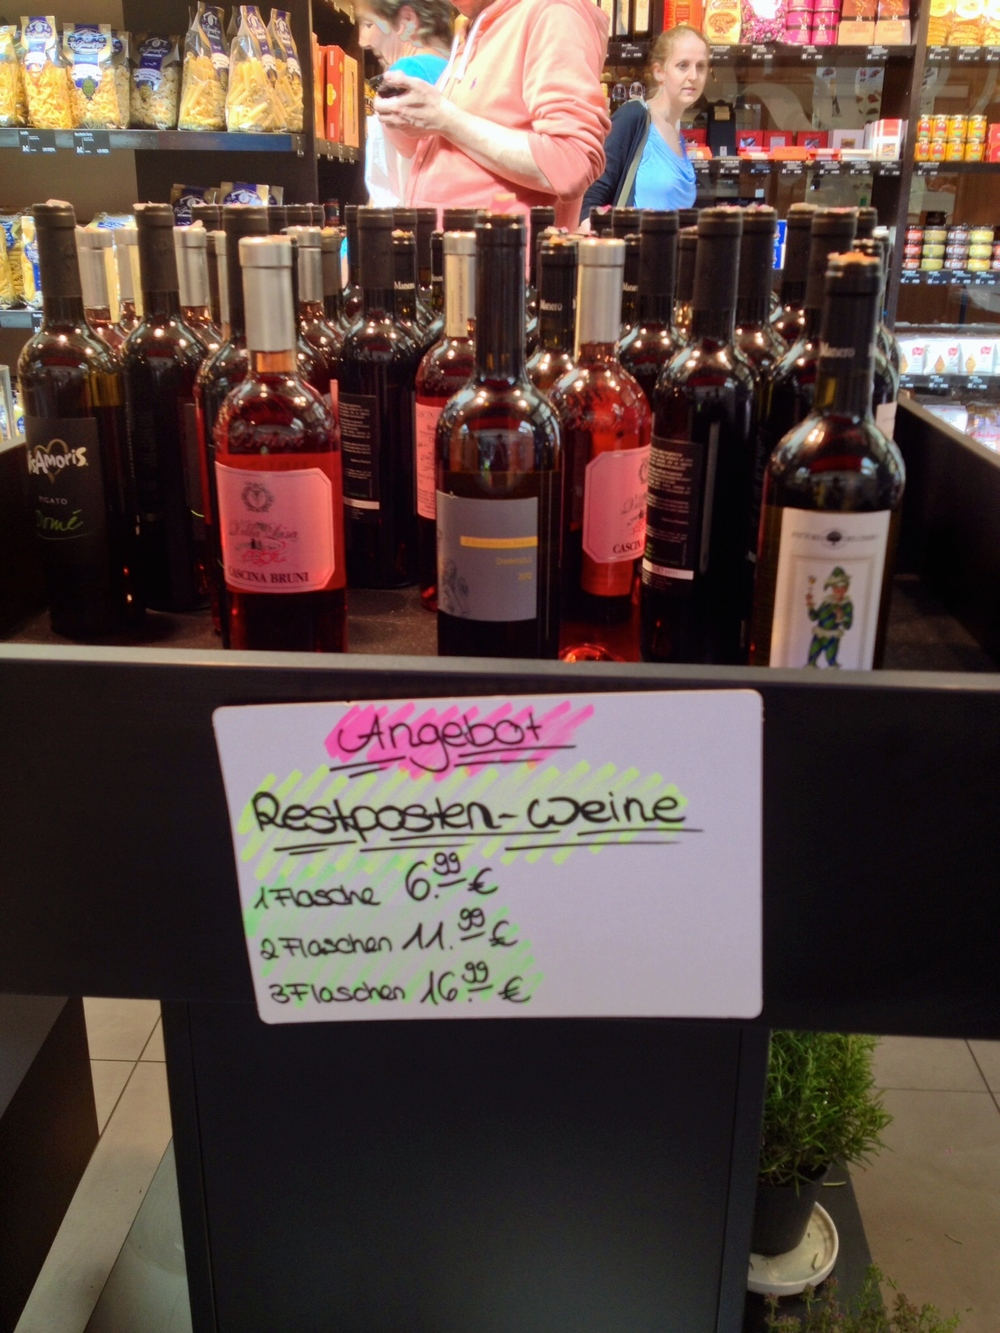 Sale wines at Di Gennaro